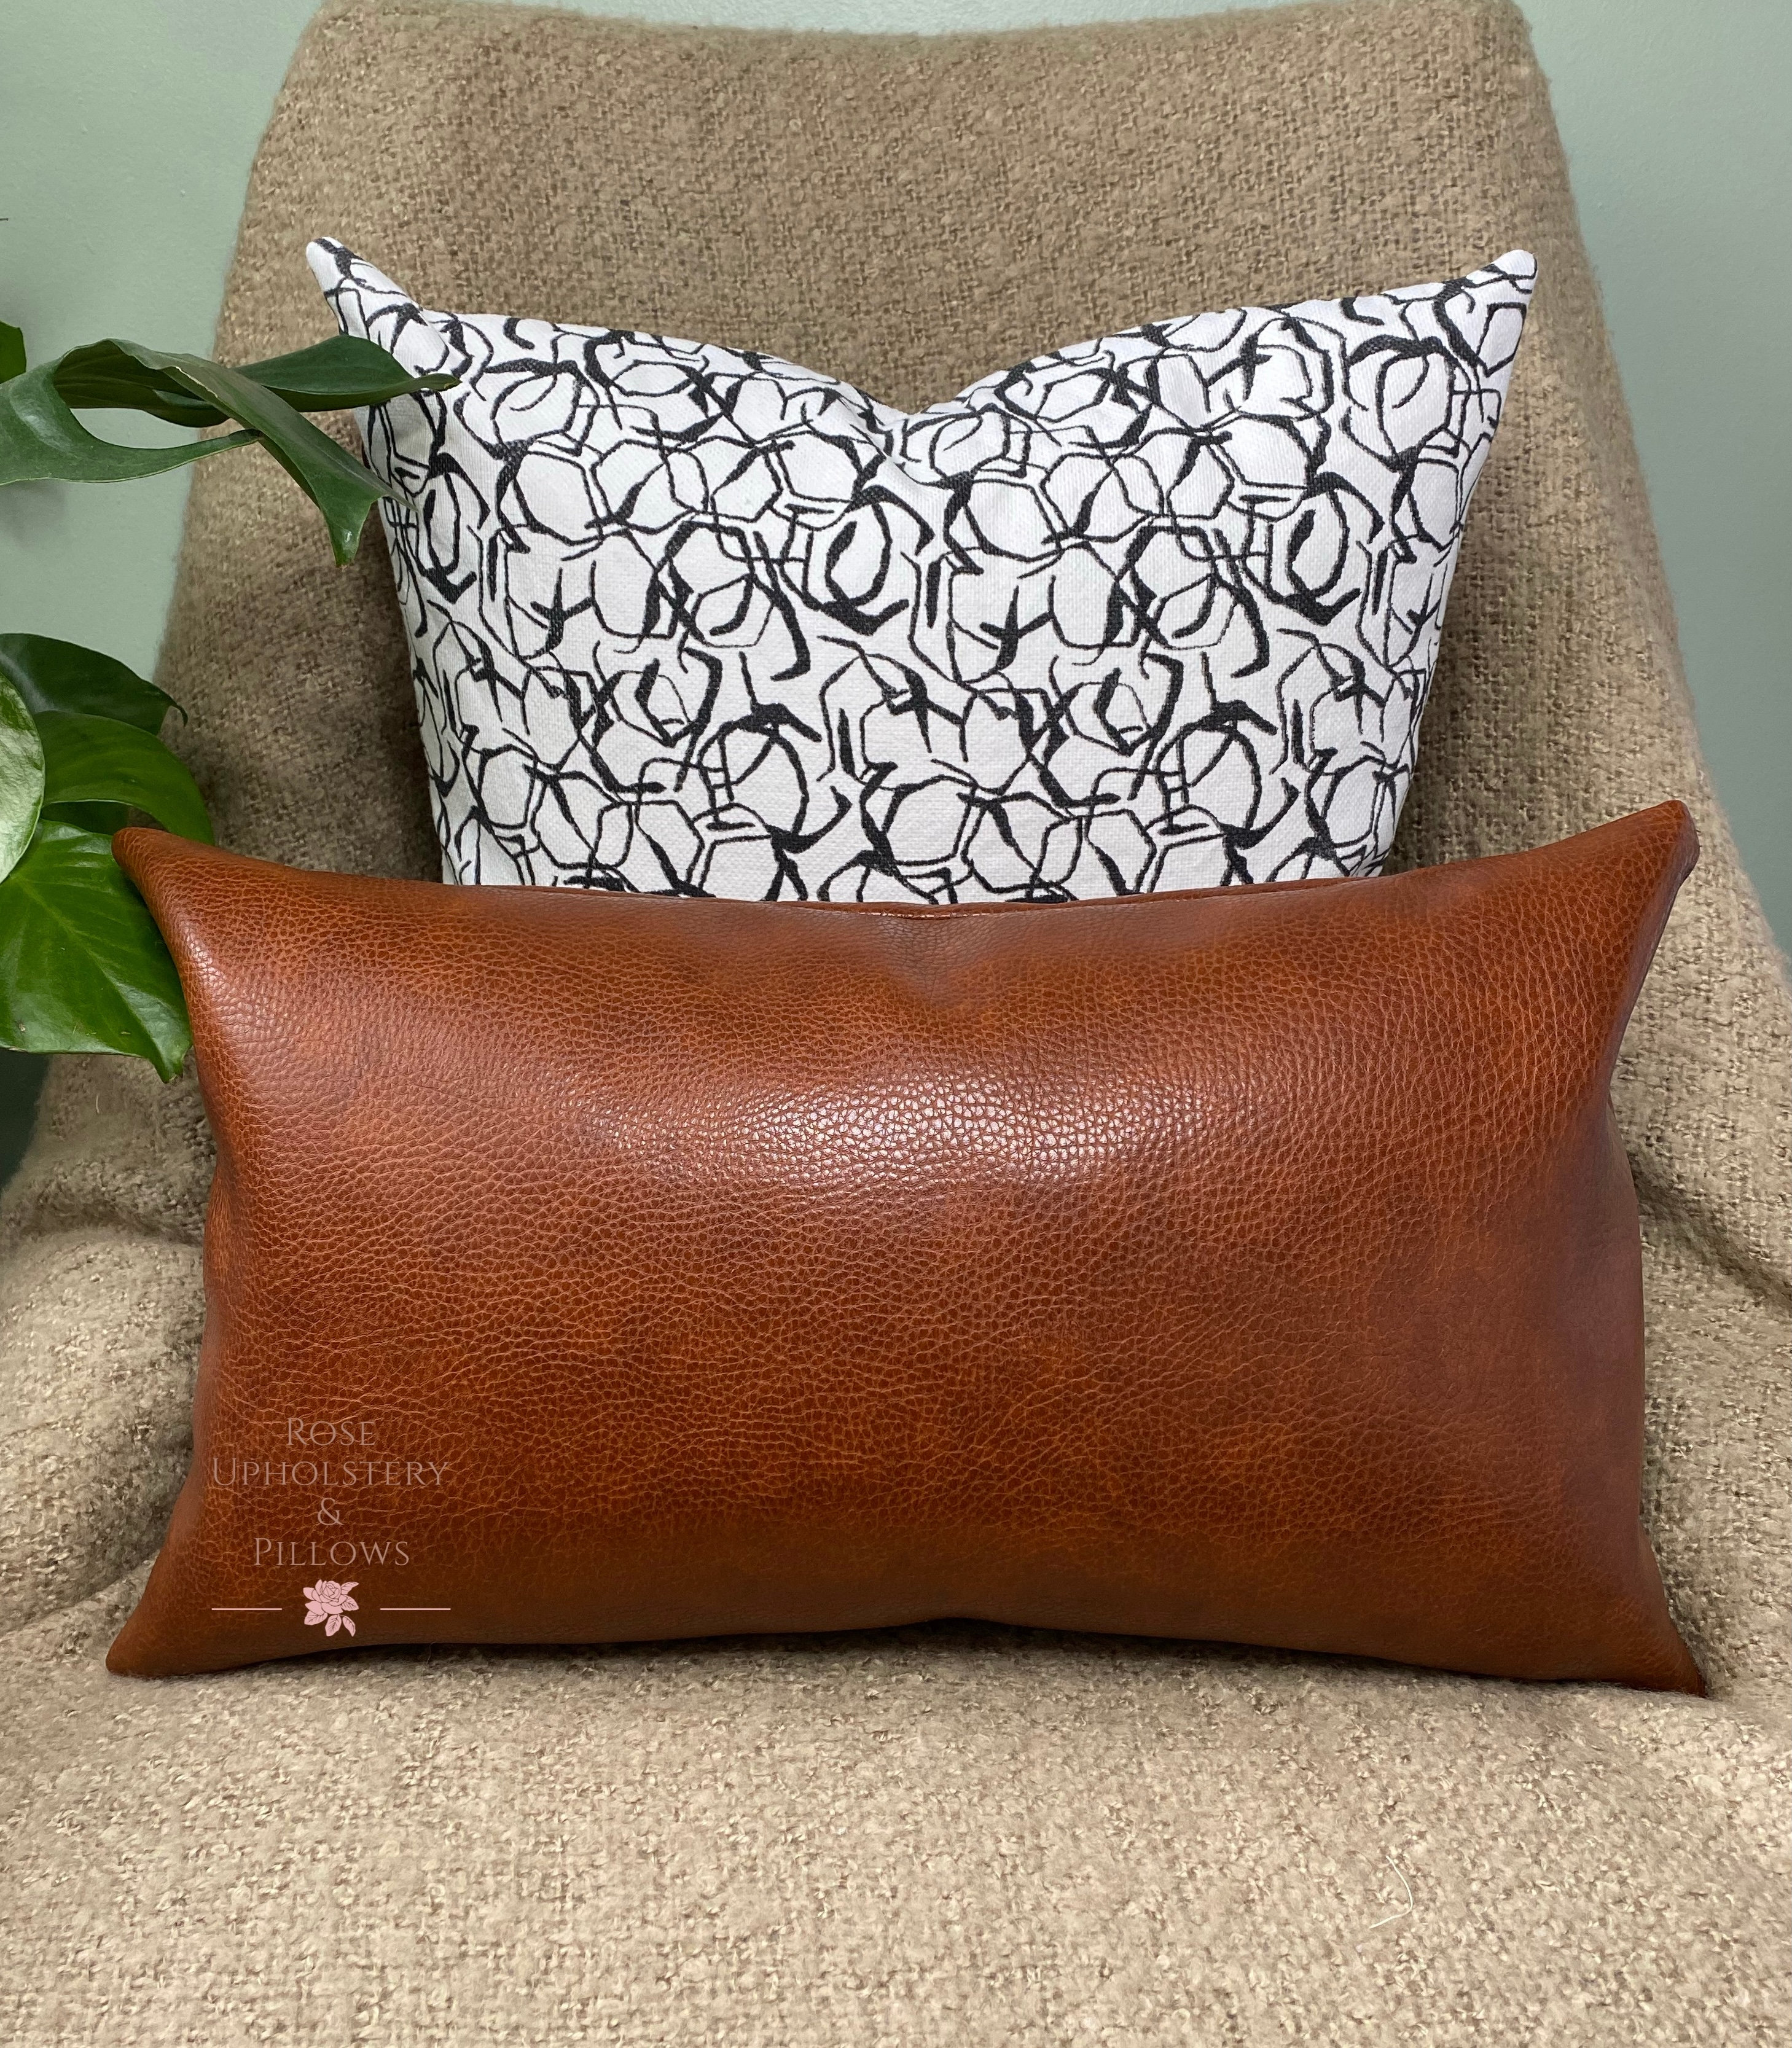 single 20x12 brown faux leather pillow rose upholstery p